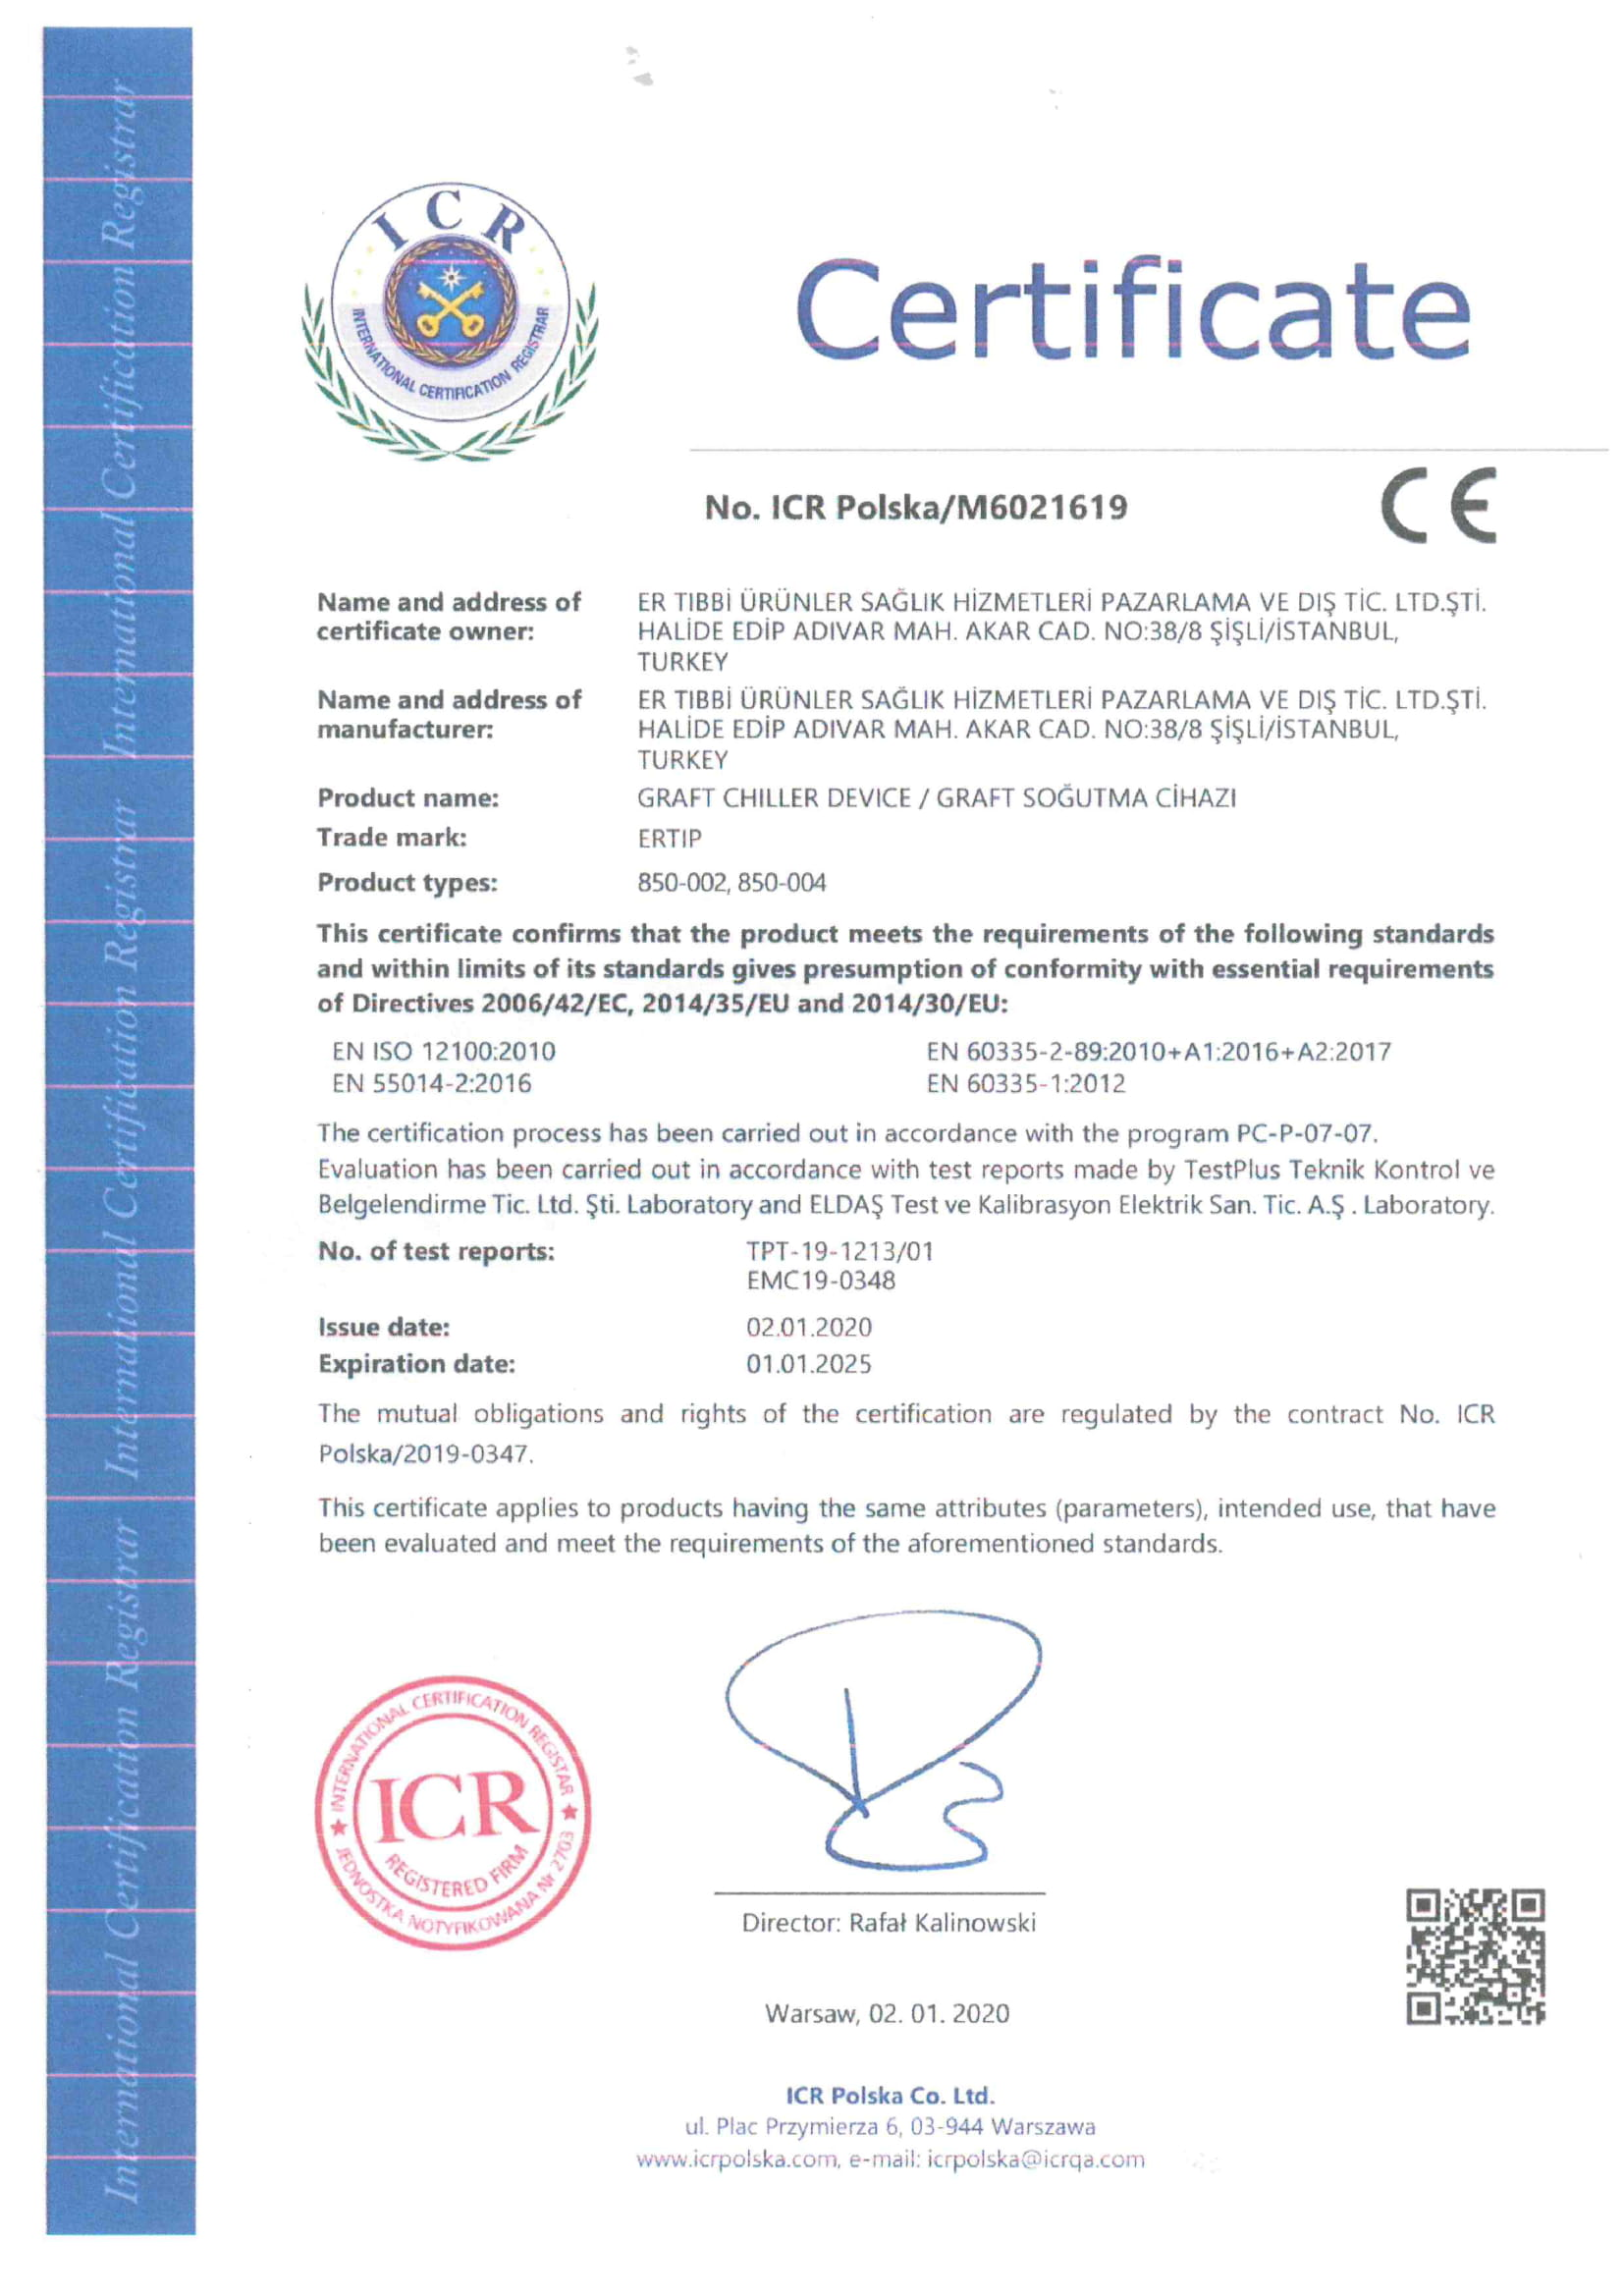 Graft Cooler CE Certificate